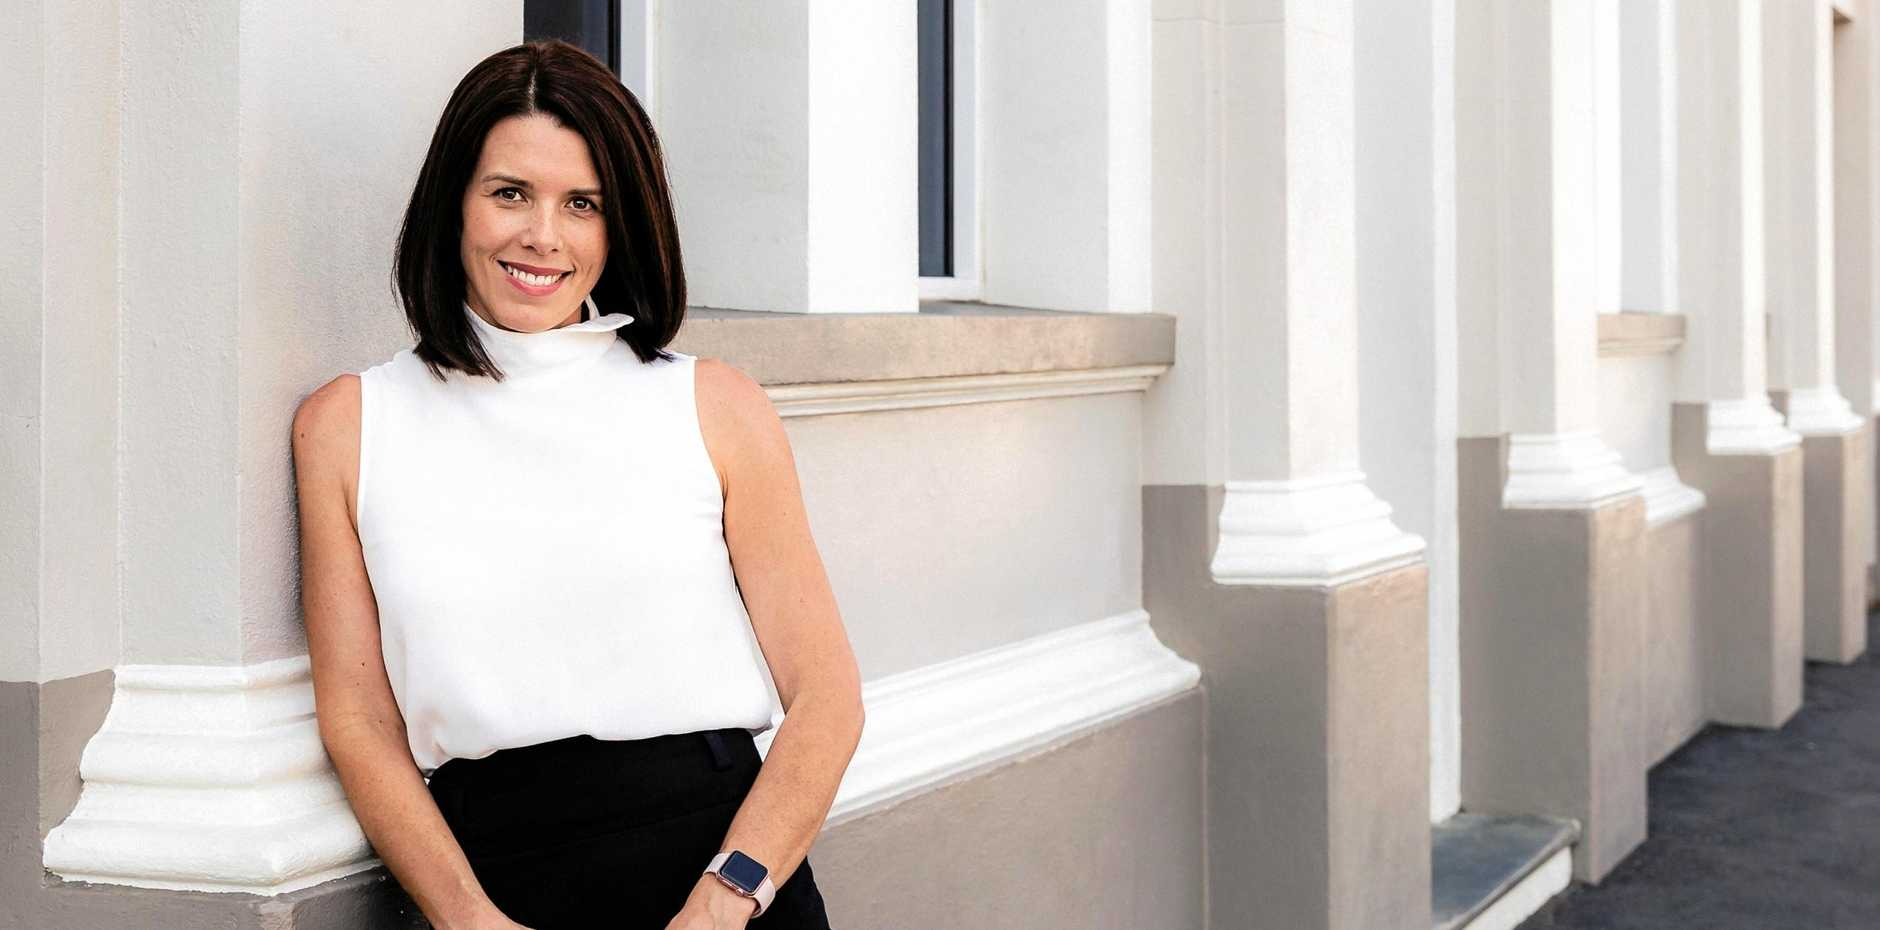 GREAT IDEA: Slater Solutions chief executive officer Brooke Brandon is leading the tech charge with a revolutionary new app.